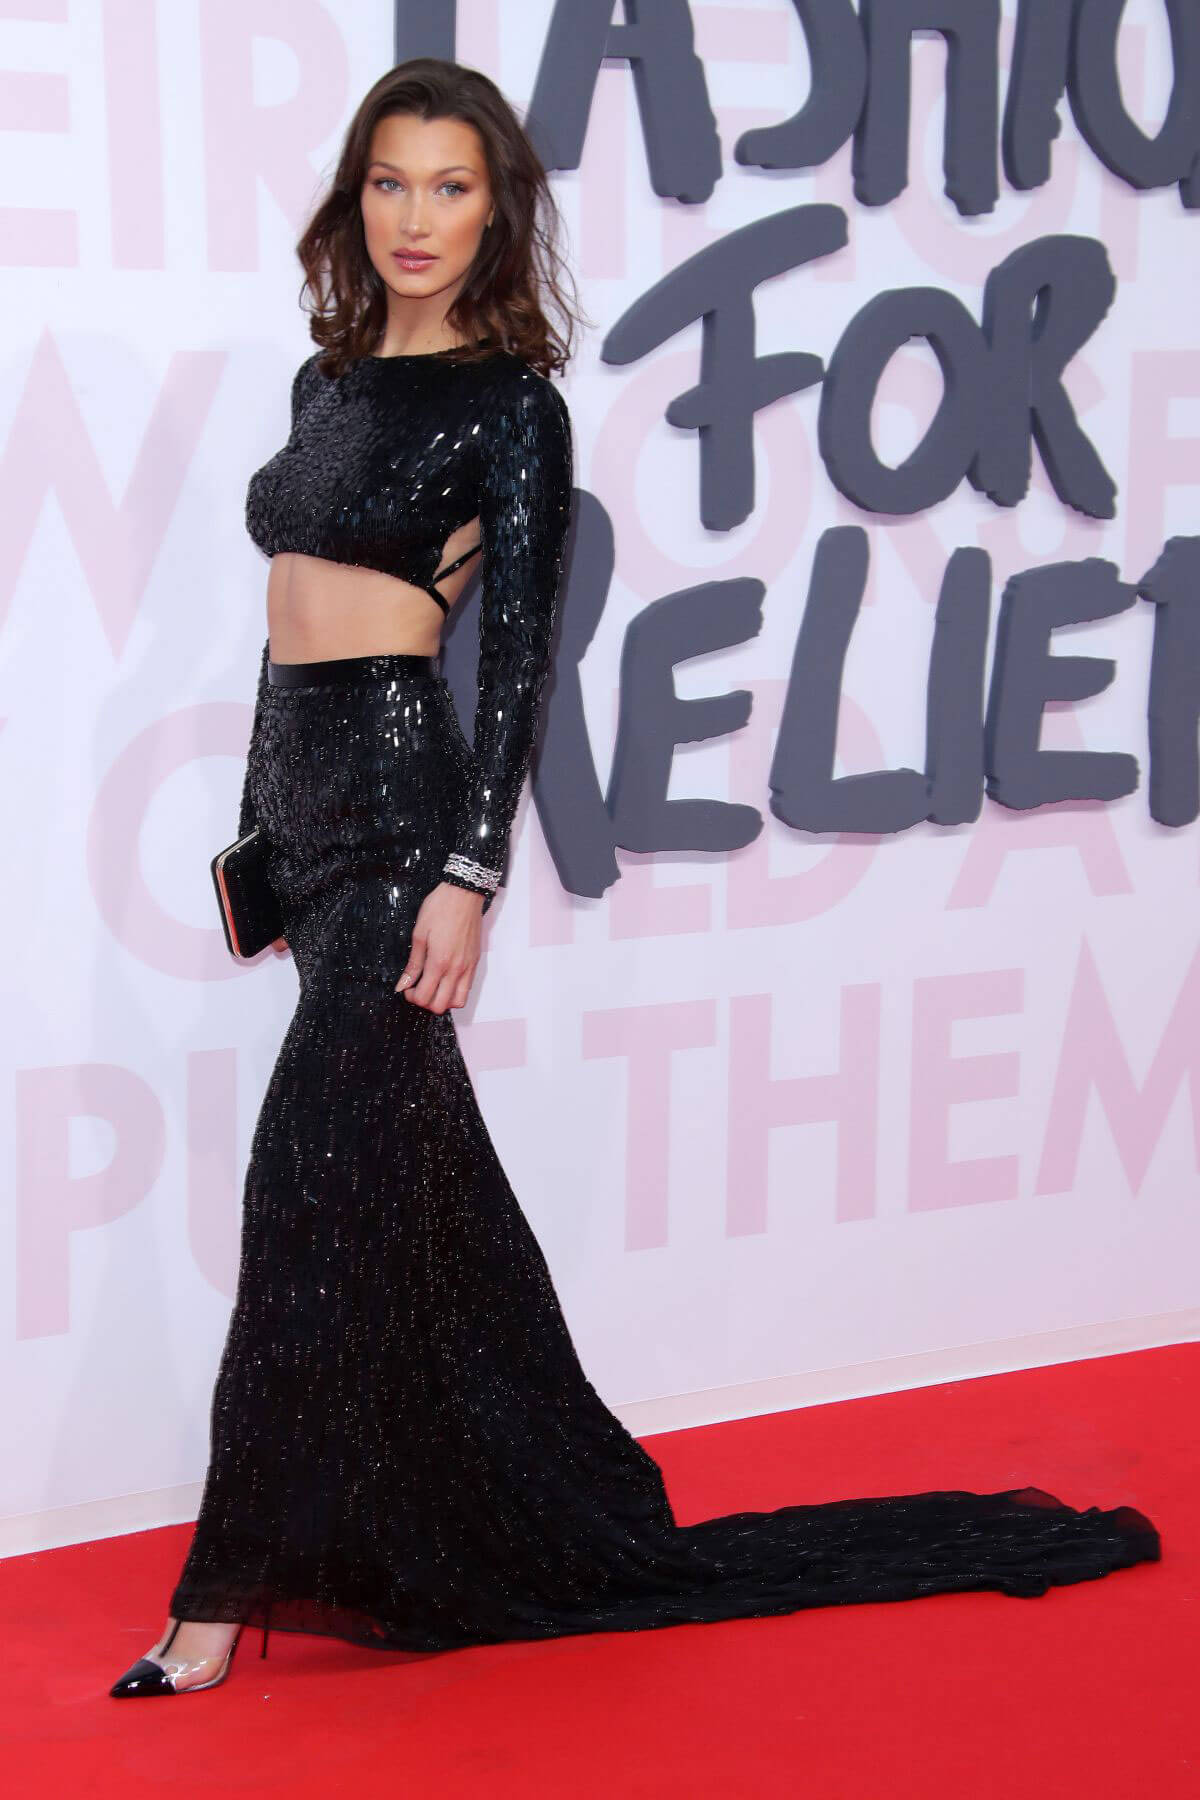 Bella Hadid at Fashion for Relief Premiere at 2018 Cannes Film Festival 2018/05/13 1